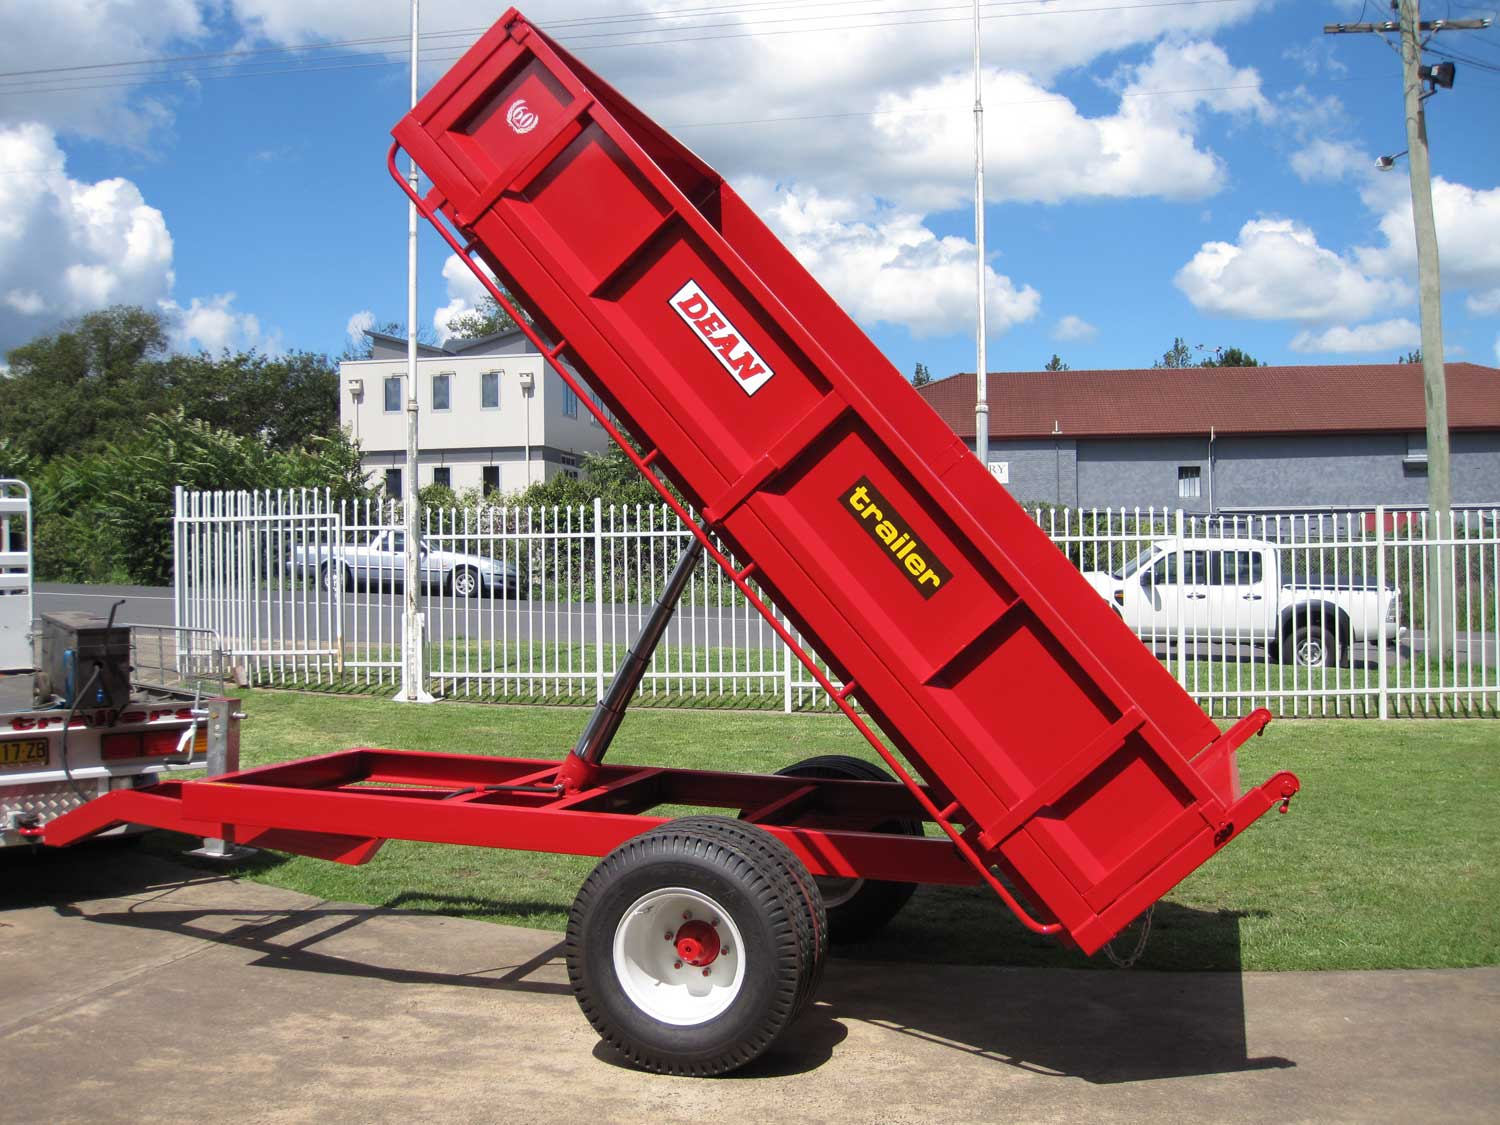 No.01 Jumbo 6 Tonne Capacity Farm Tipper